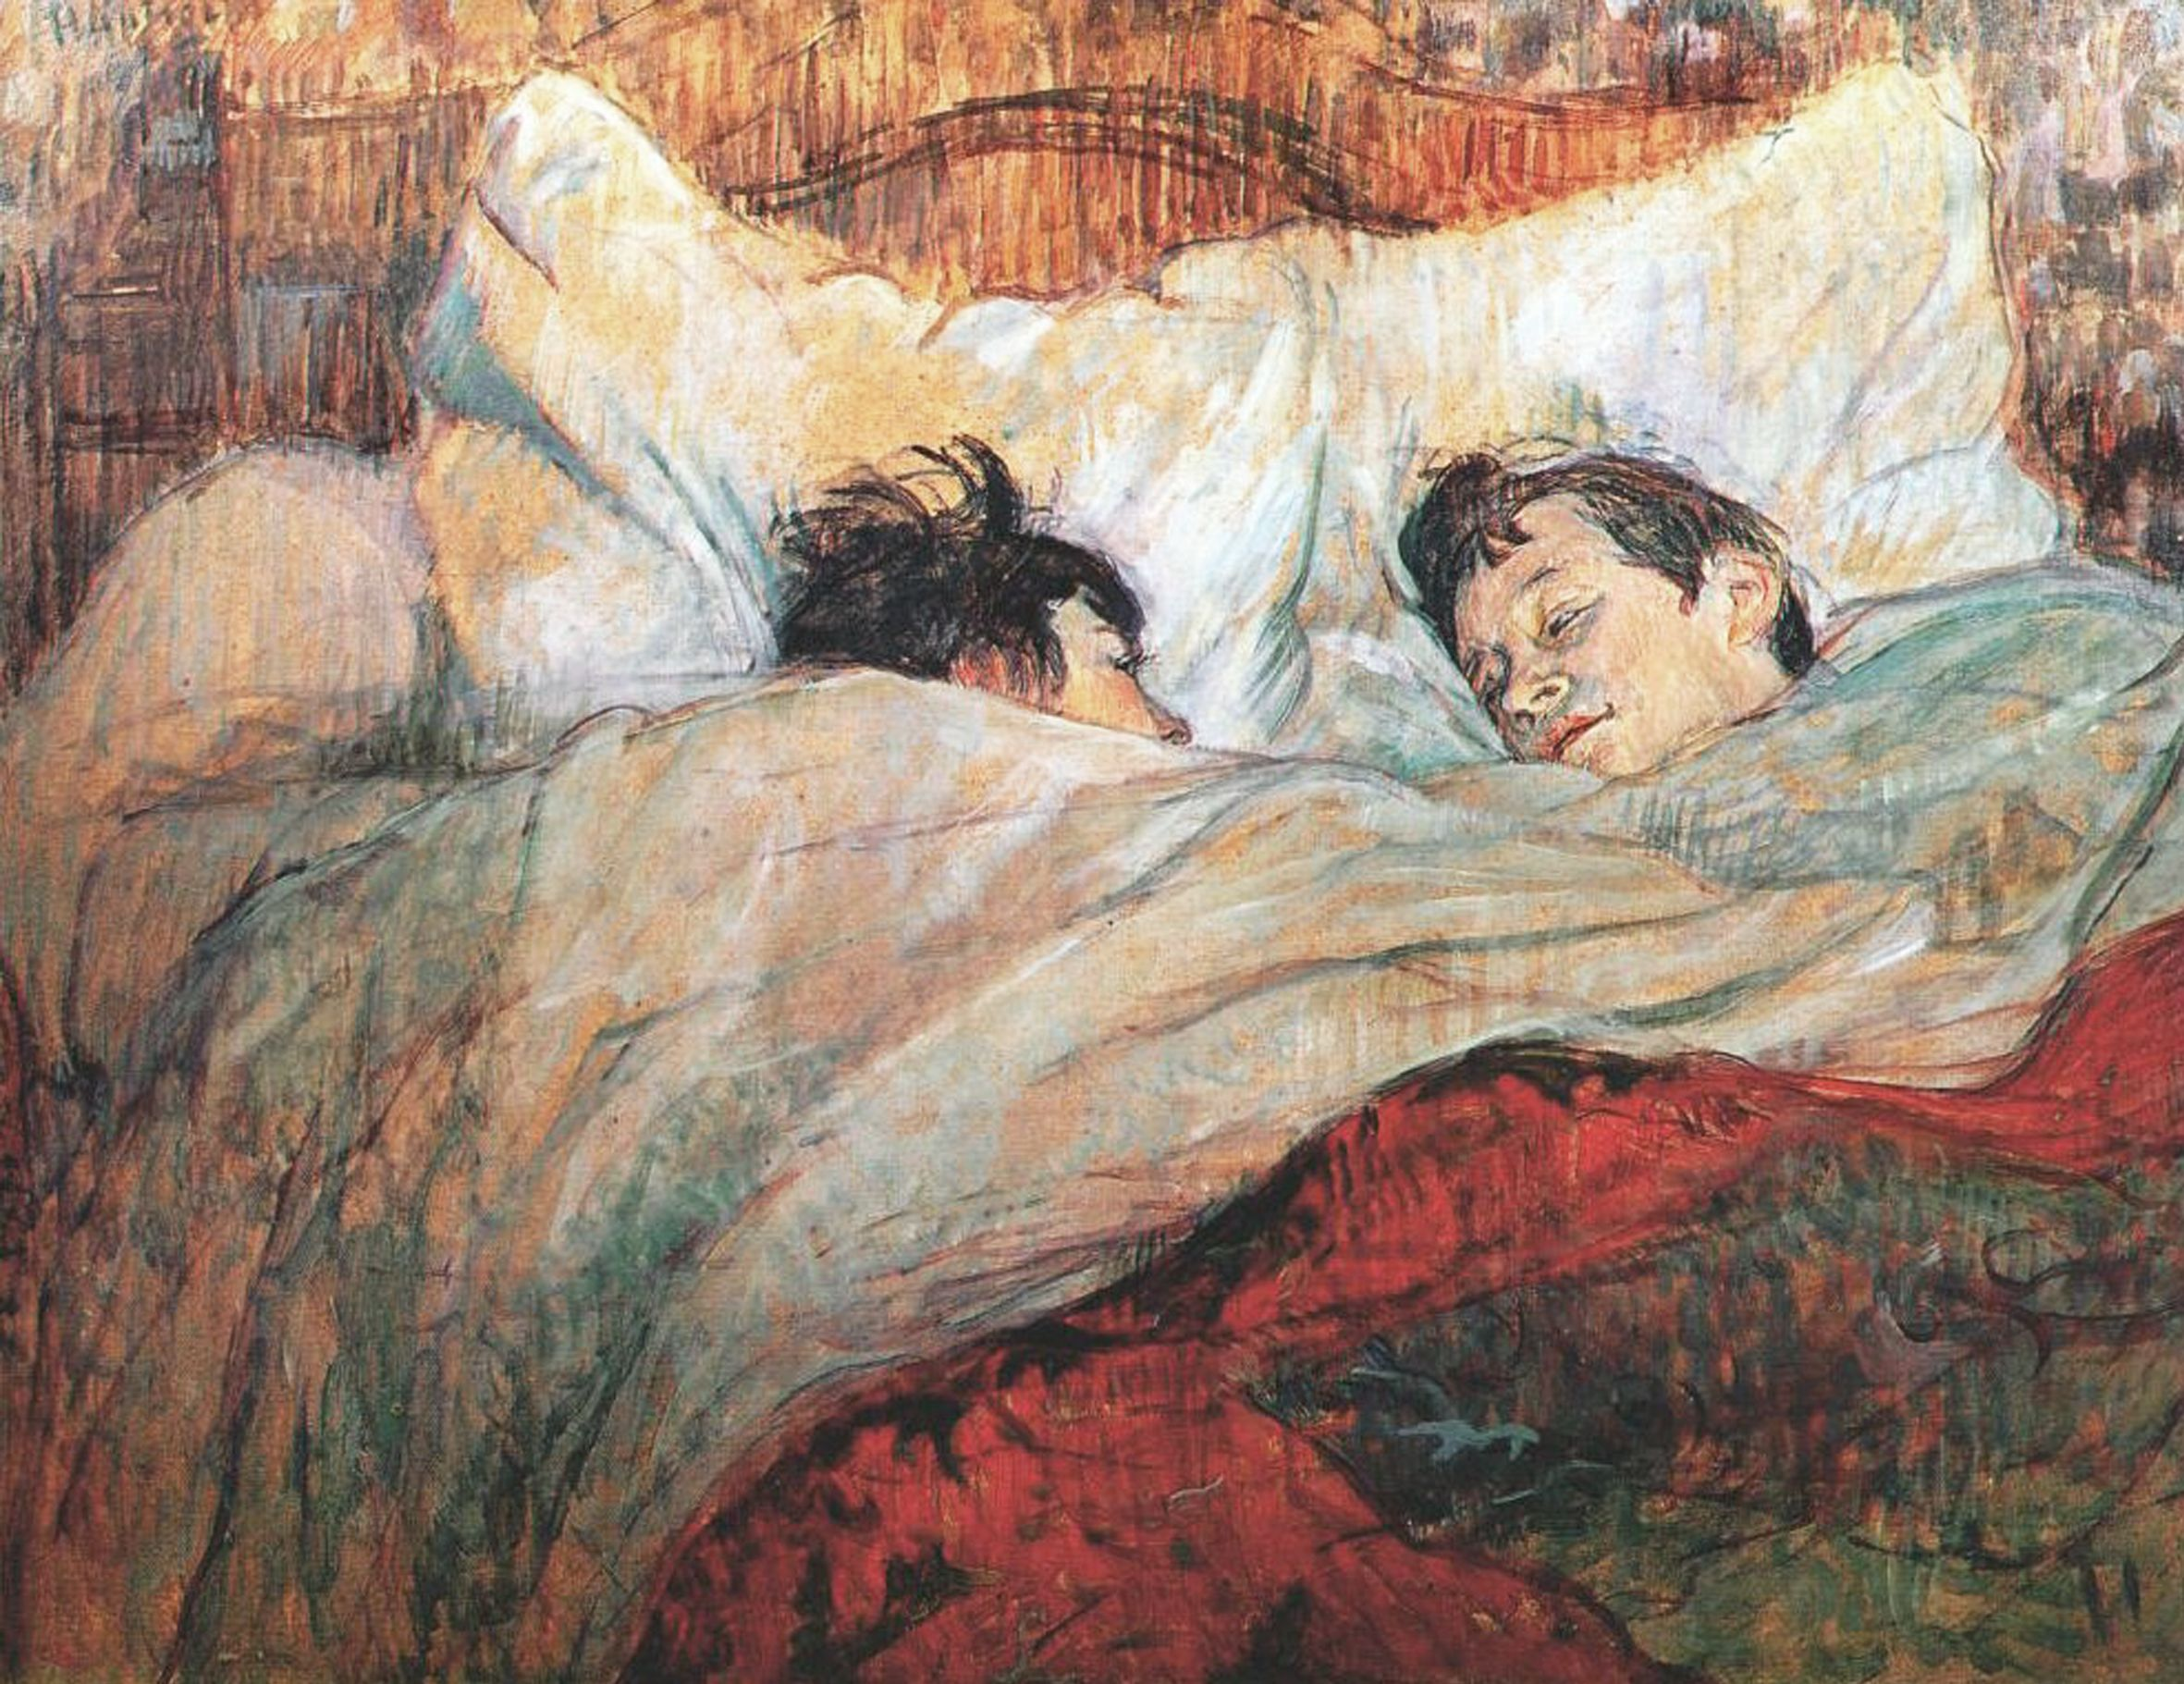 http://en.wikipedia.org/wiki/File:Lautrec_in_bed_1893.jpg